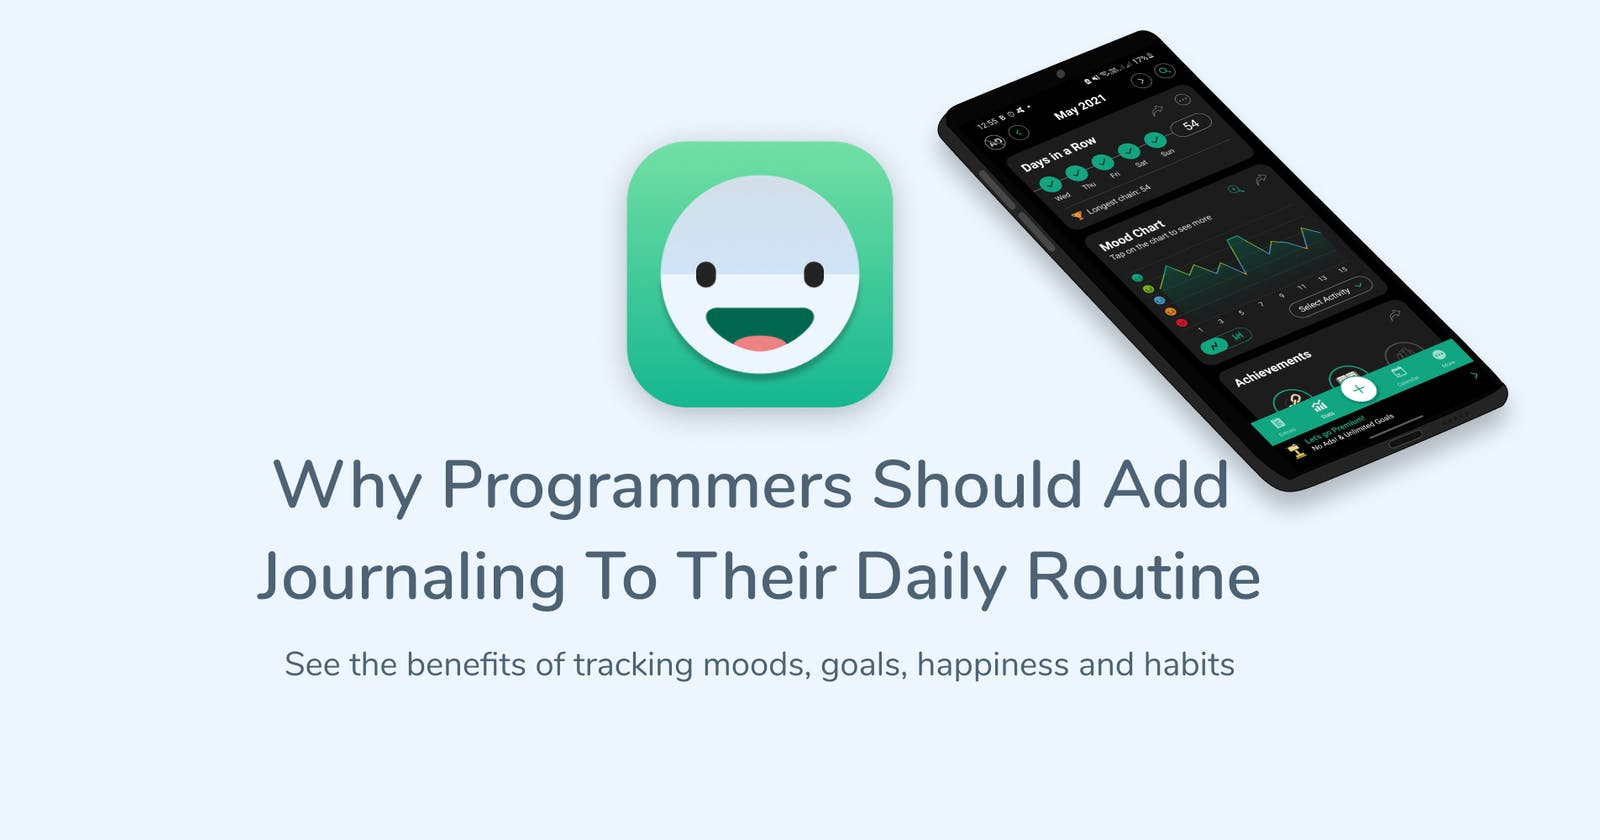 Why programmers should add journaling to their daily routine